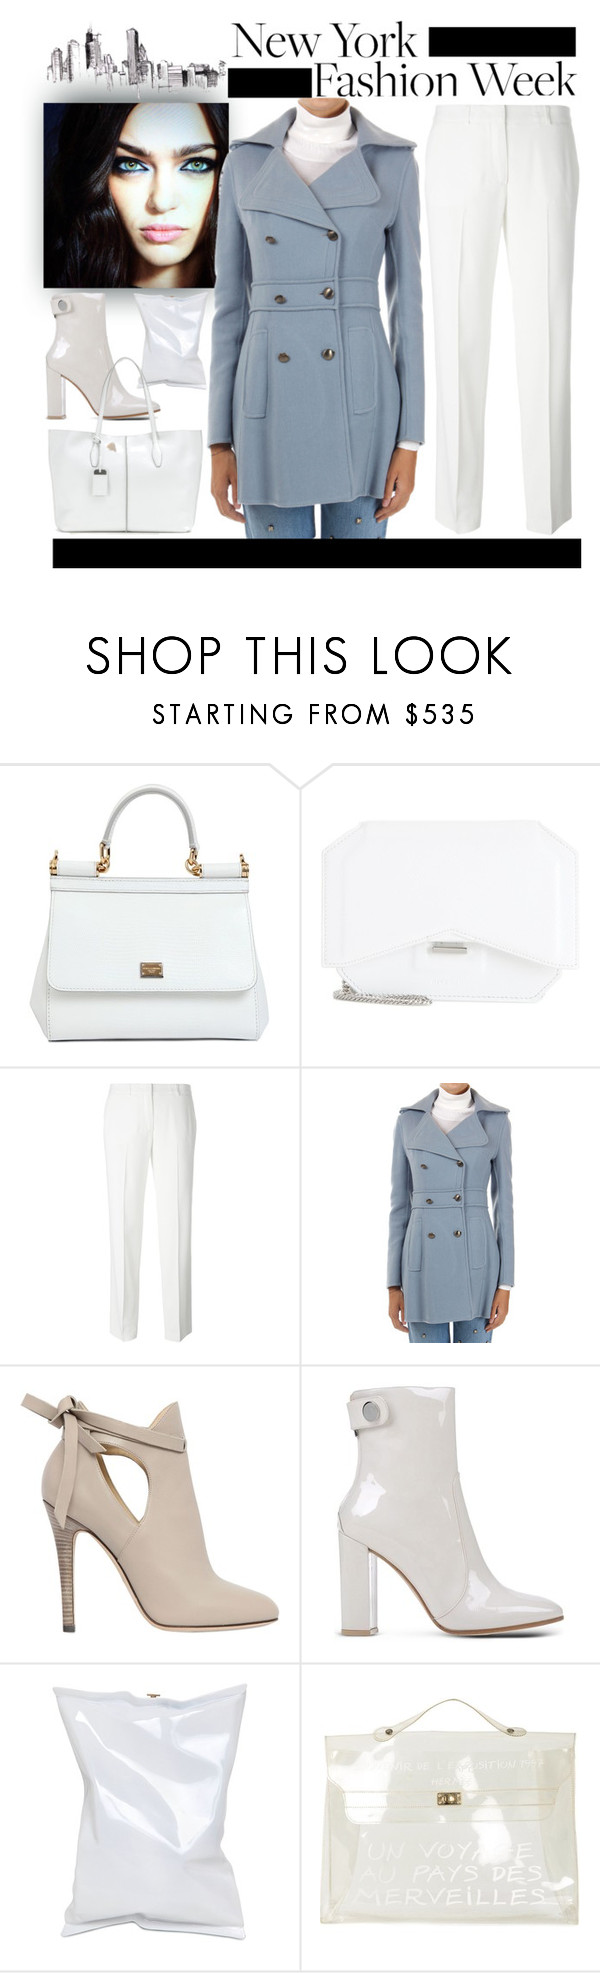 """""""Pack for NYFW!"""" by yours-styling-best-friend ❤ liked on Polyvore featuring Dolce&Gabbana, Givenchy, Ermanno Scervino, Jimmy Choo, Gianvito Rossi, Anya Hindmarch, Hermès, Tod's, women's clothing and women"""